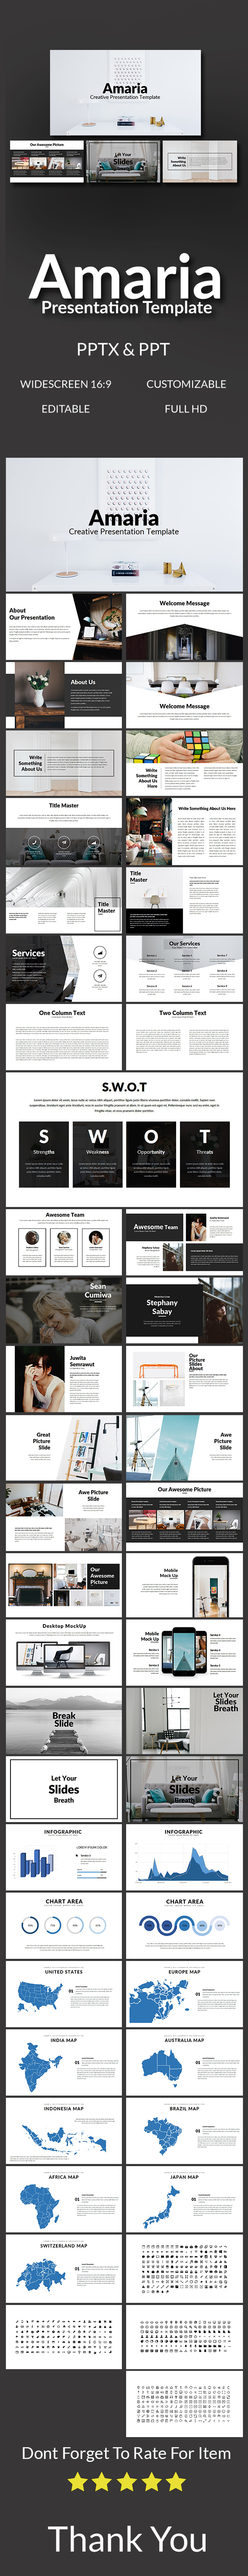 GraphicRiver Amaria Presentation Template 20757279